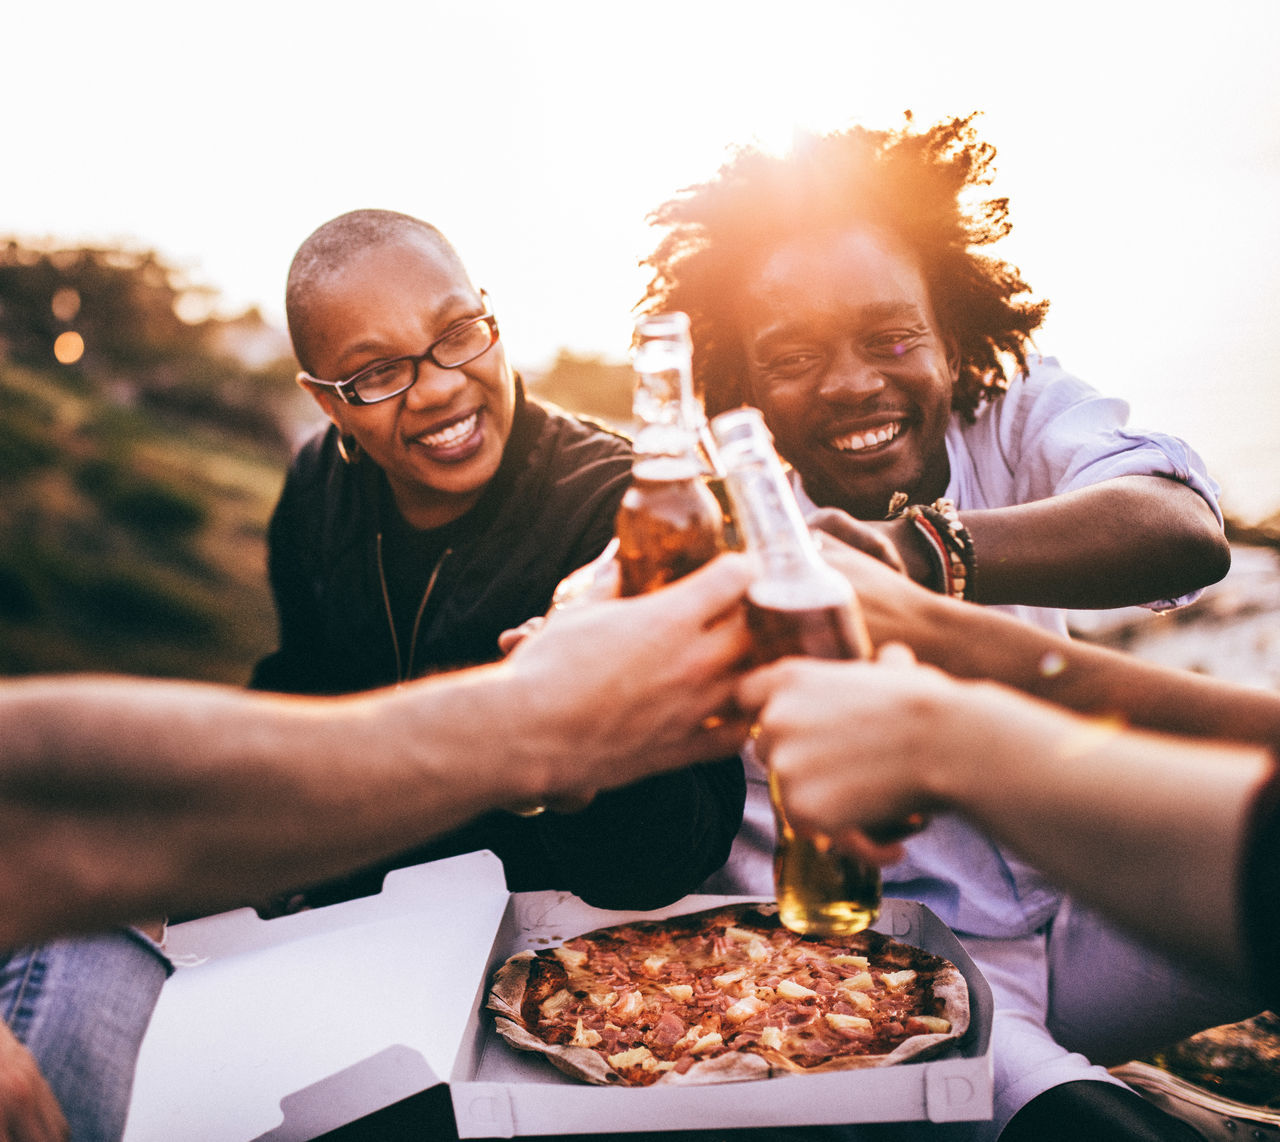 Friends toasting beer bottles while sitting against clear sky during sunset